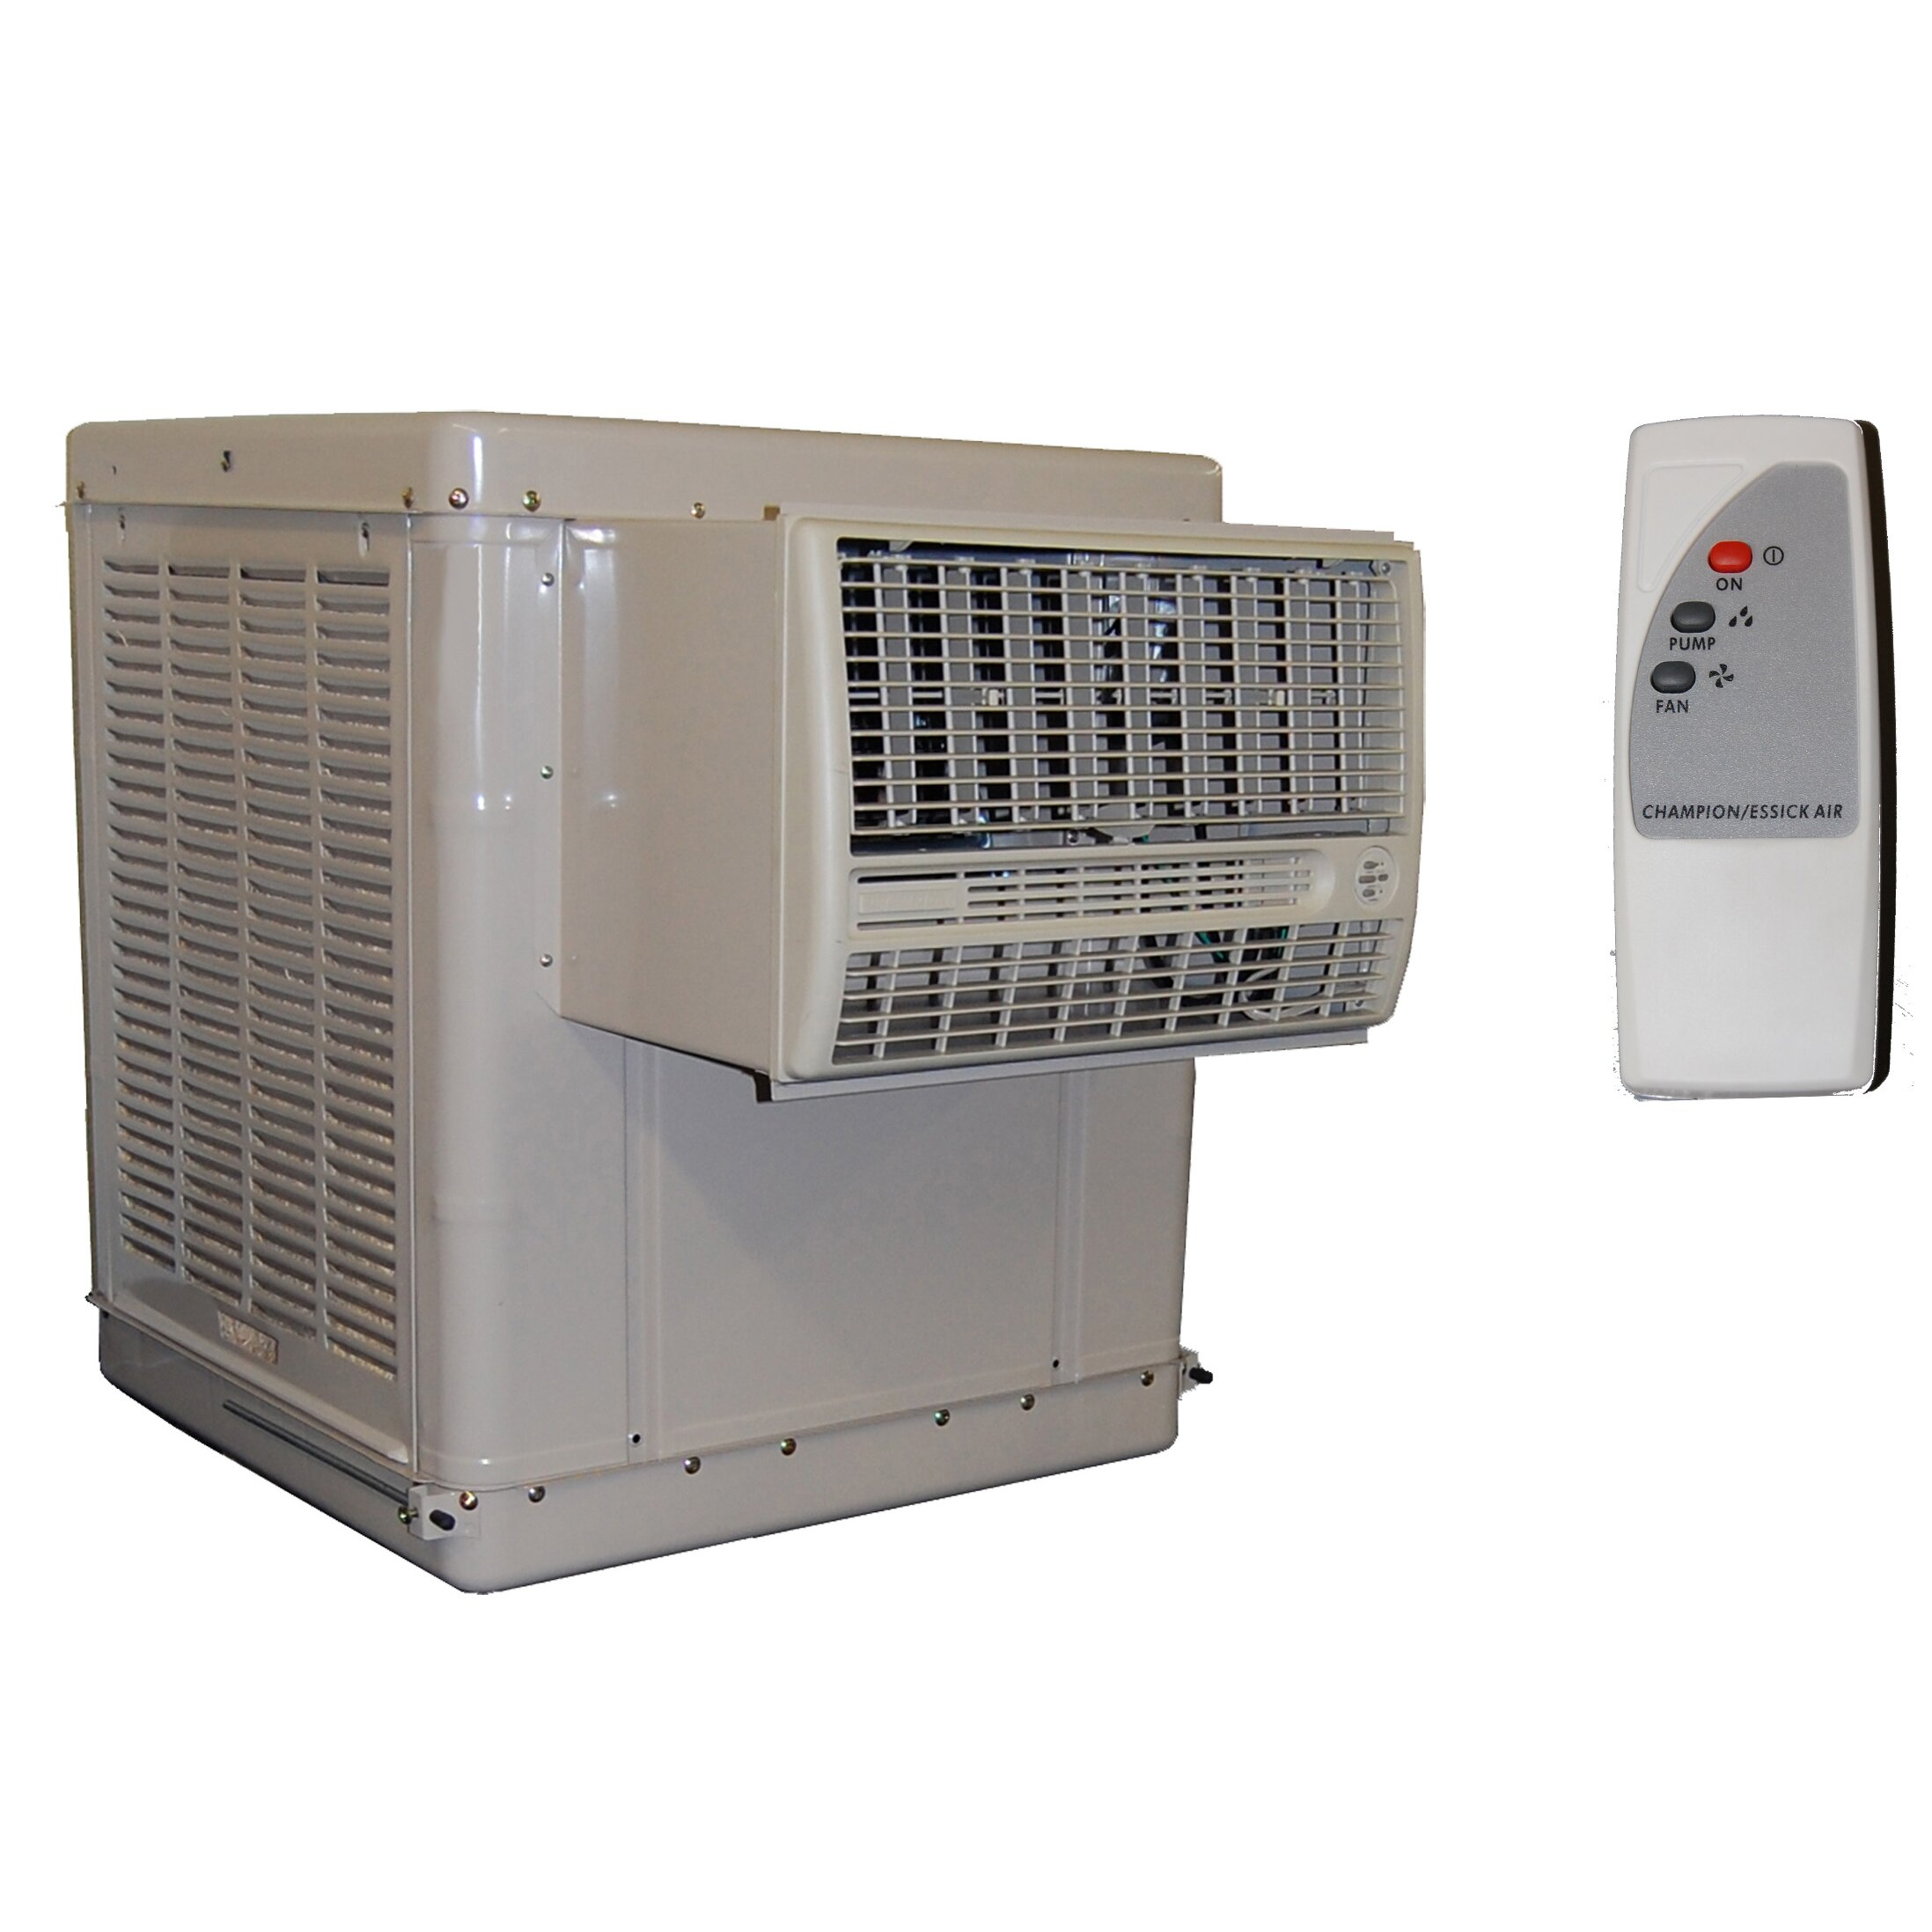 Window Evaporative Cooler with Remote by EssickAir #6F695C